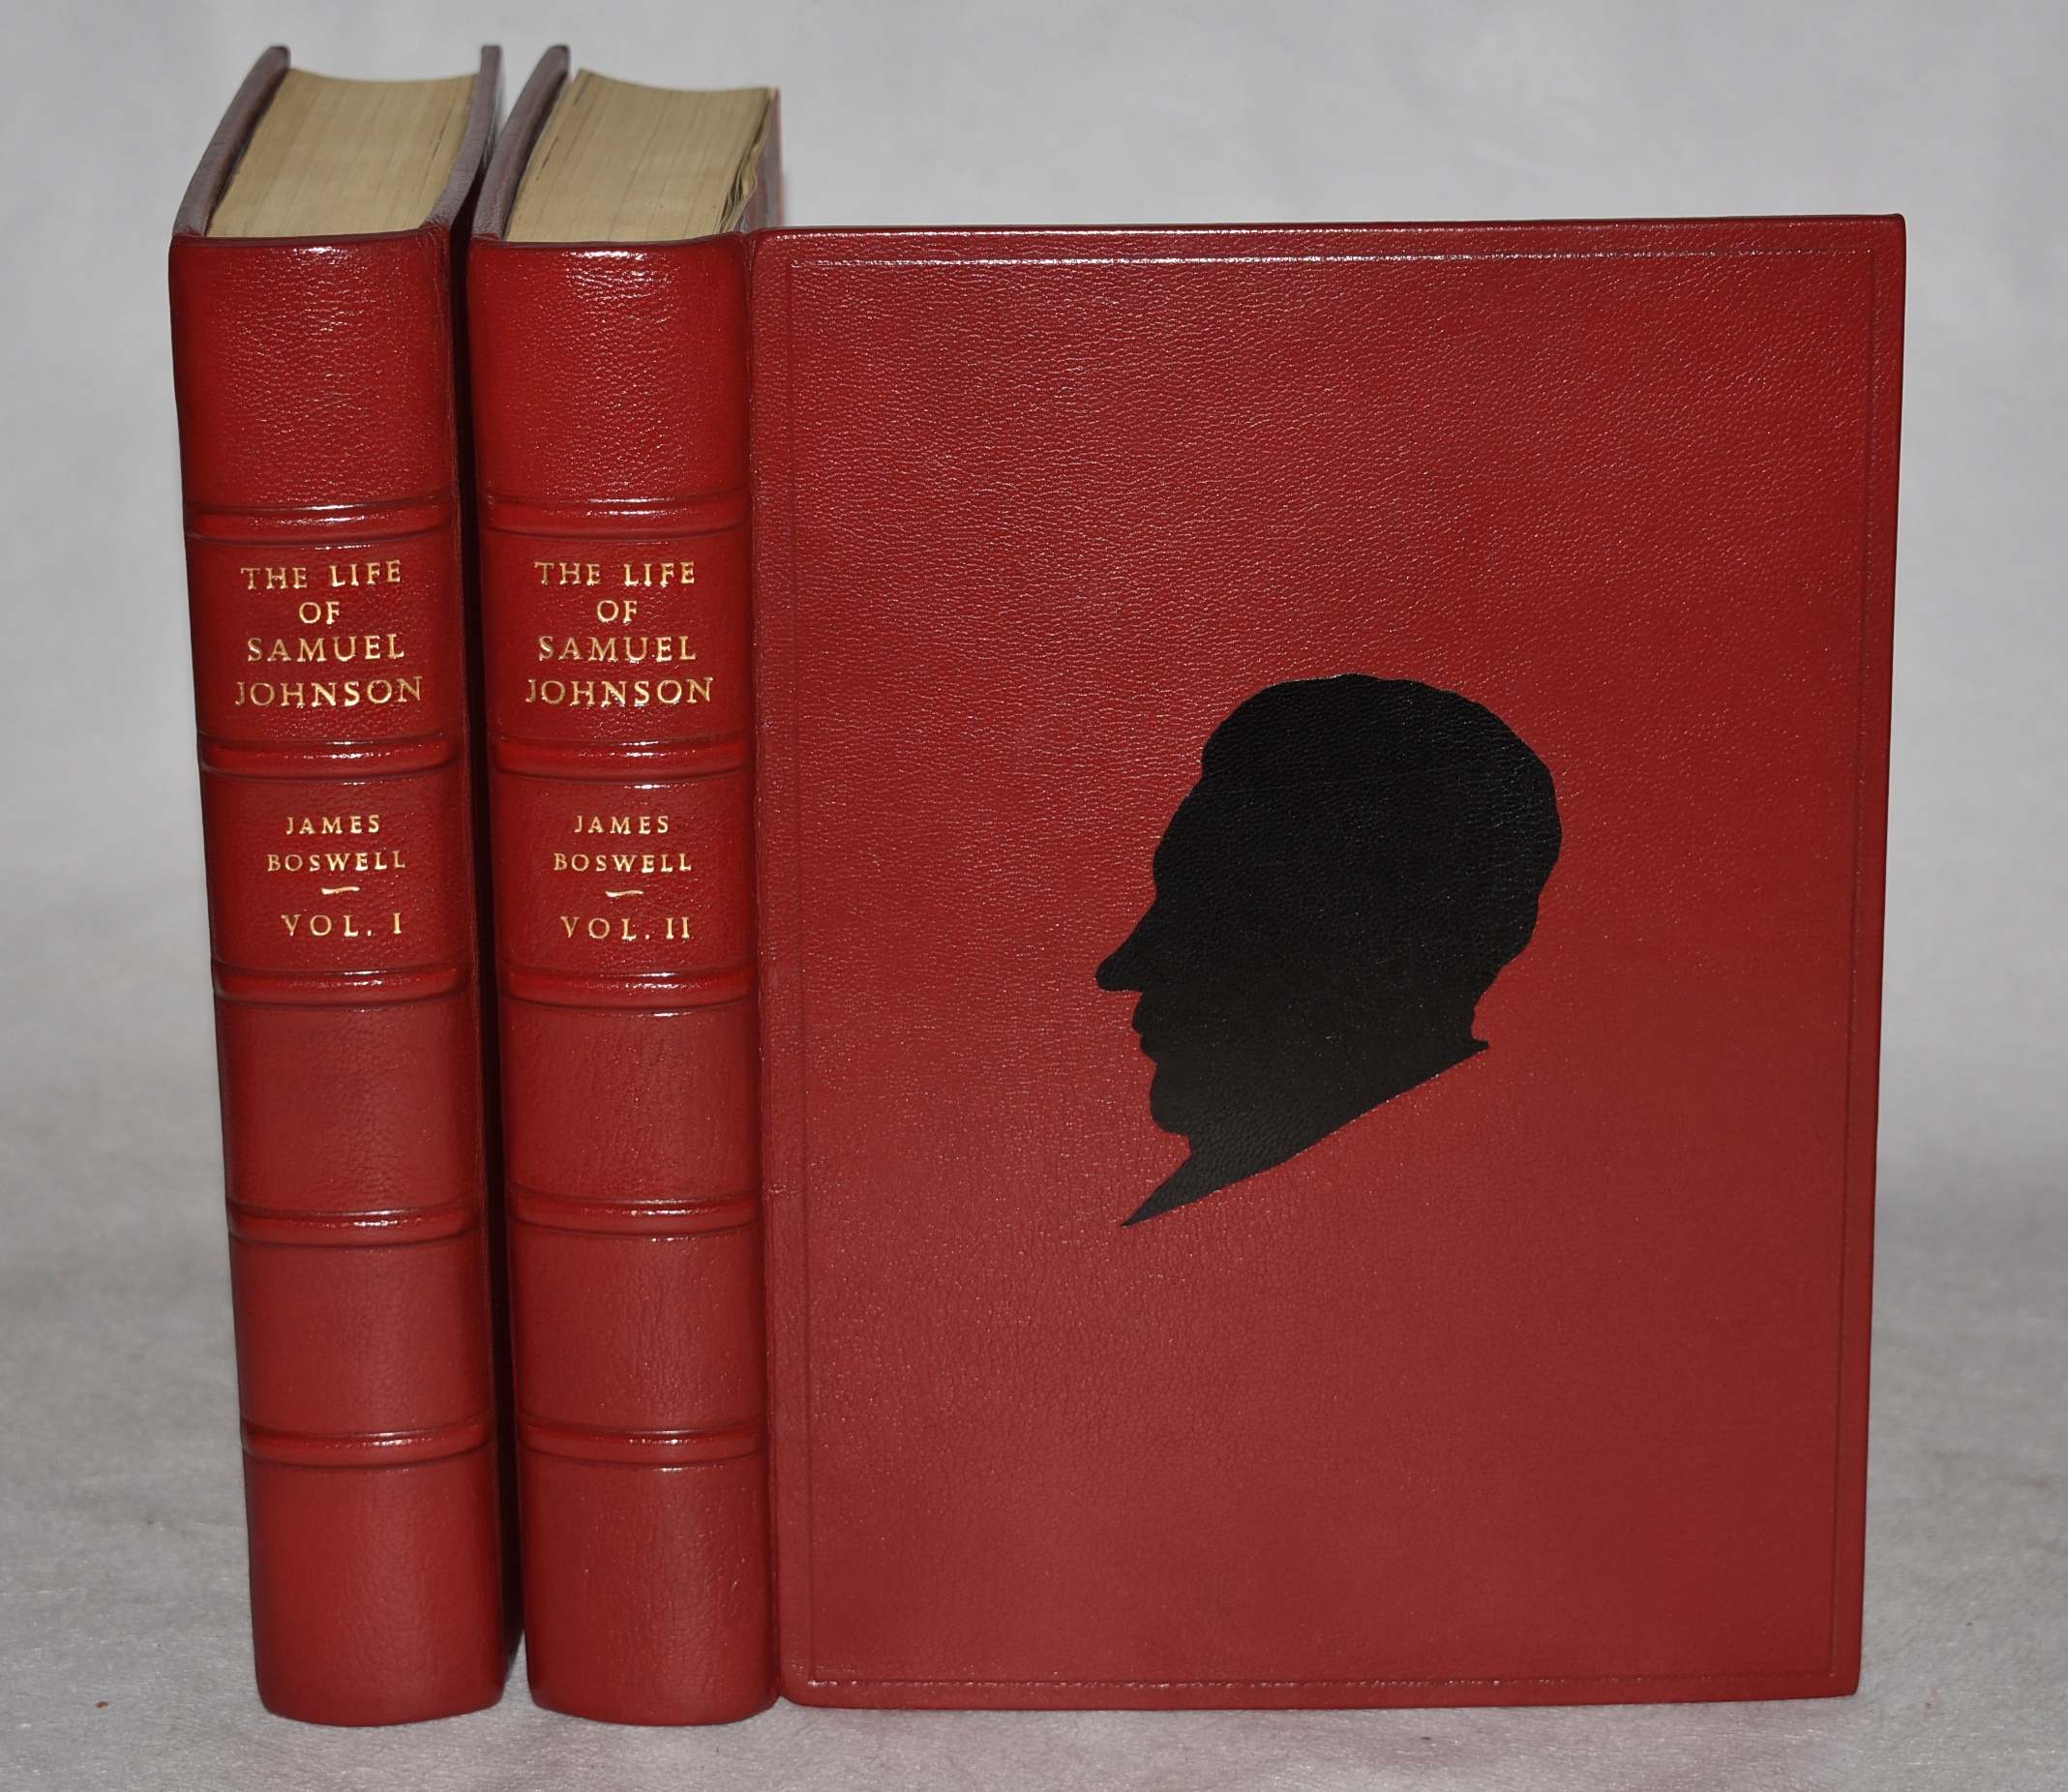 Image for The Life of Samuel Johnson. Newly Edited with Notes by Roger Ingpen. With 576 Illustrations, Facsimiles and Maps including 13 plates in Photogravure. In Two Volumes. In Stunning Leather Fine Binding.